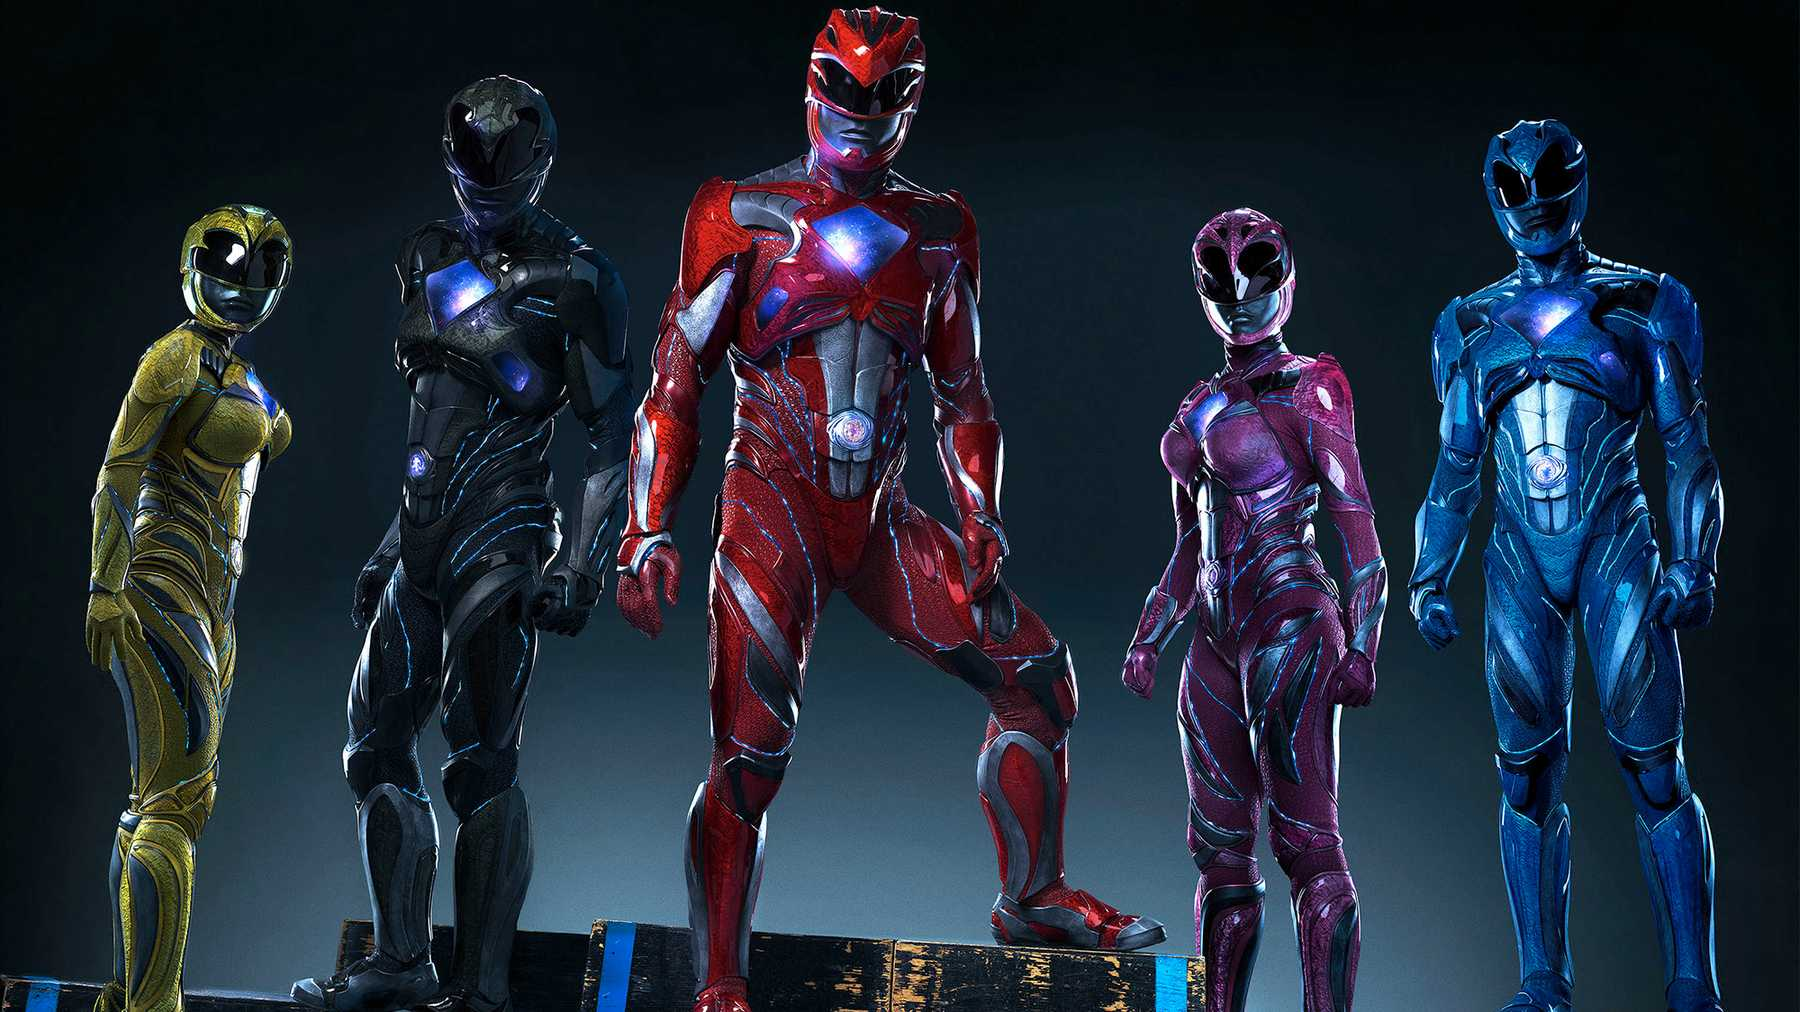 Alpha Blue Movie power rangers' alpha 5 gets a new look for the latest movie